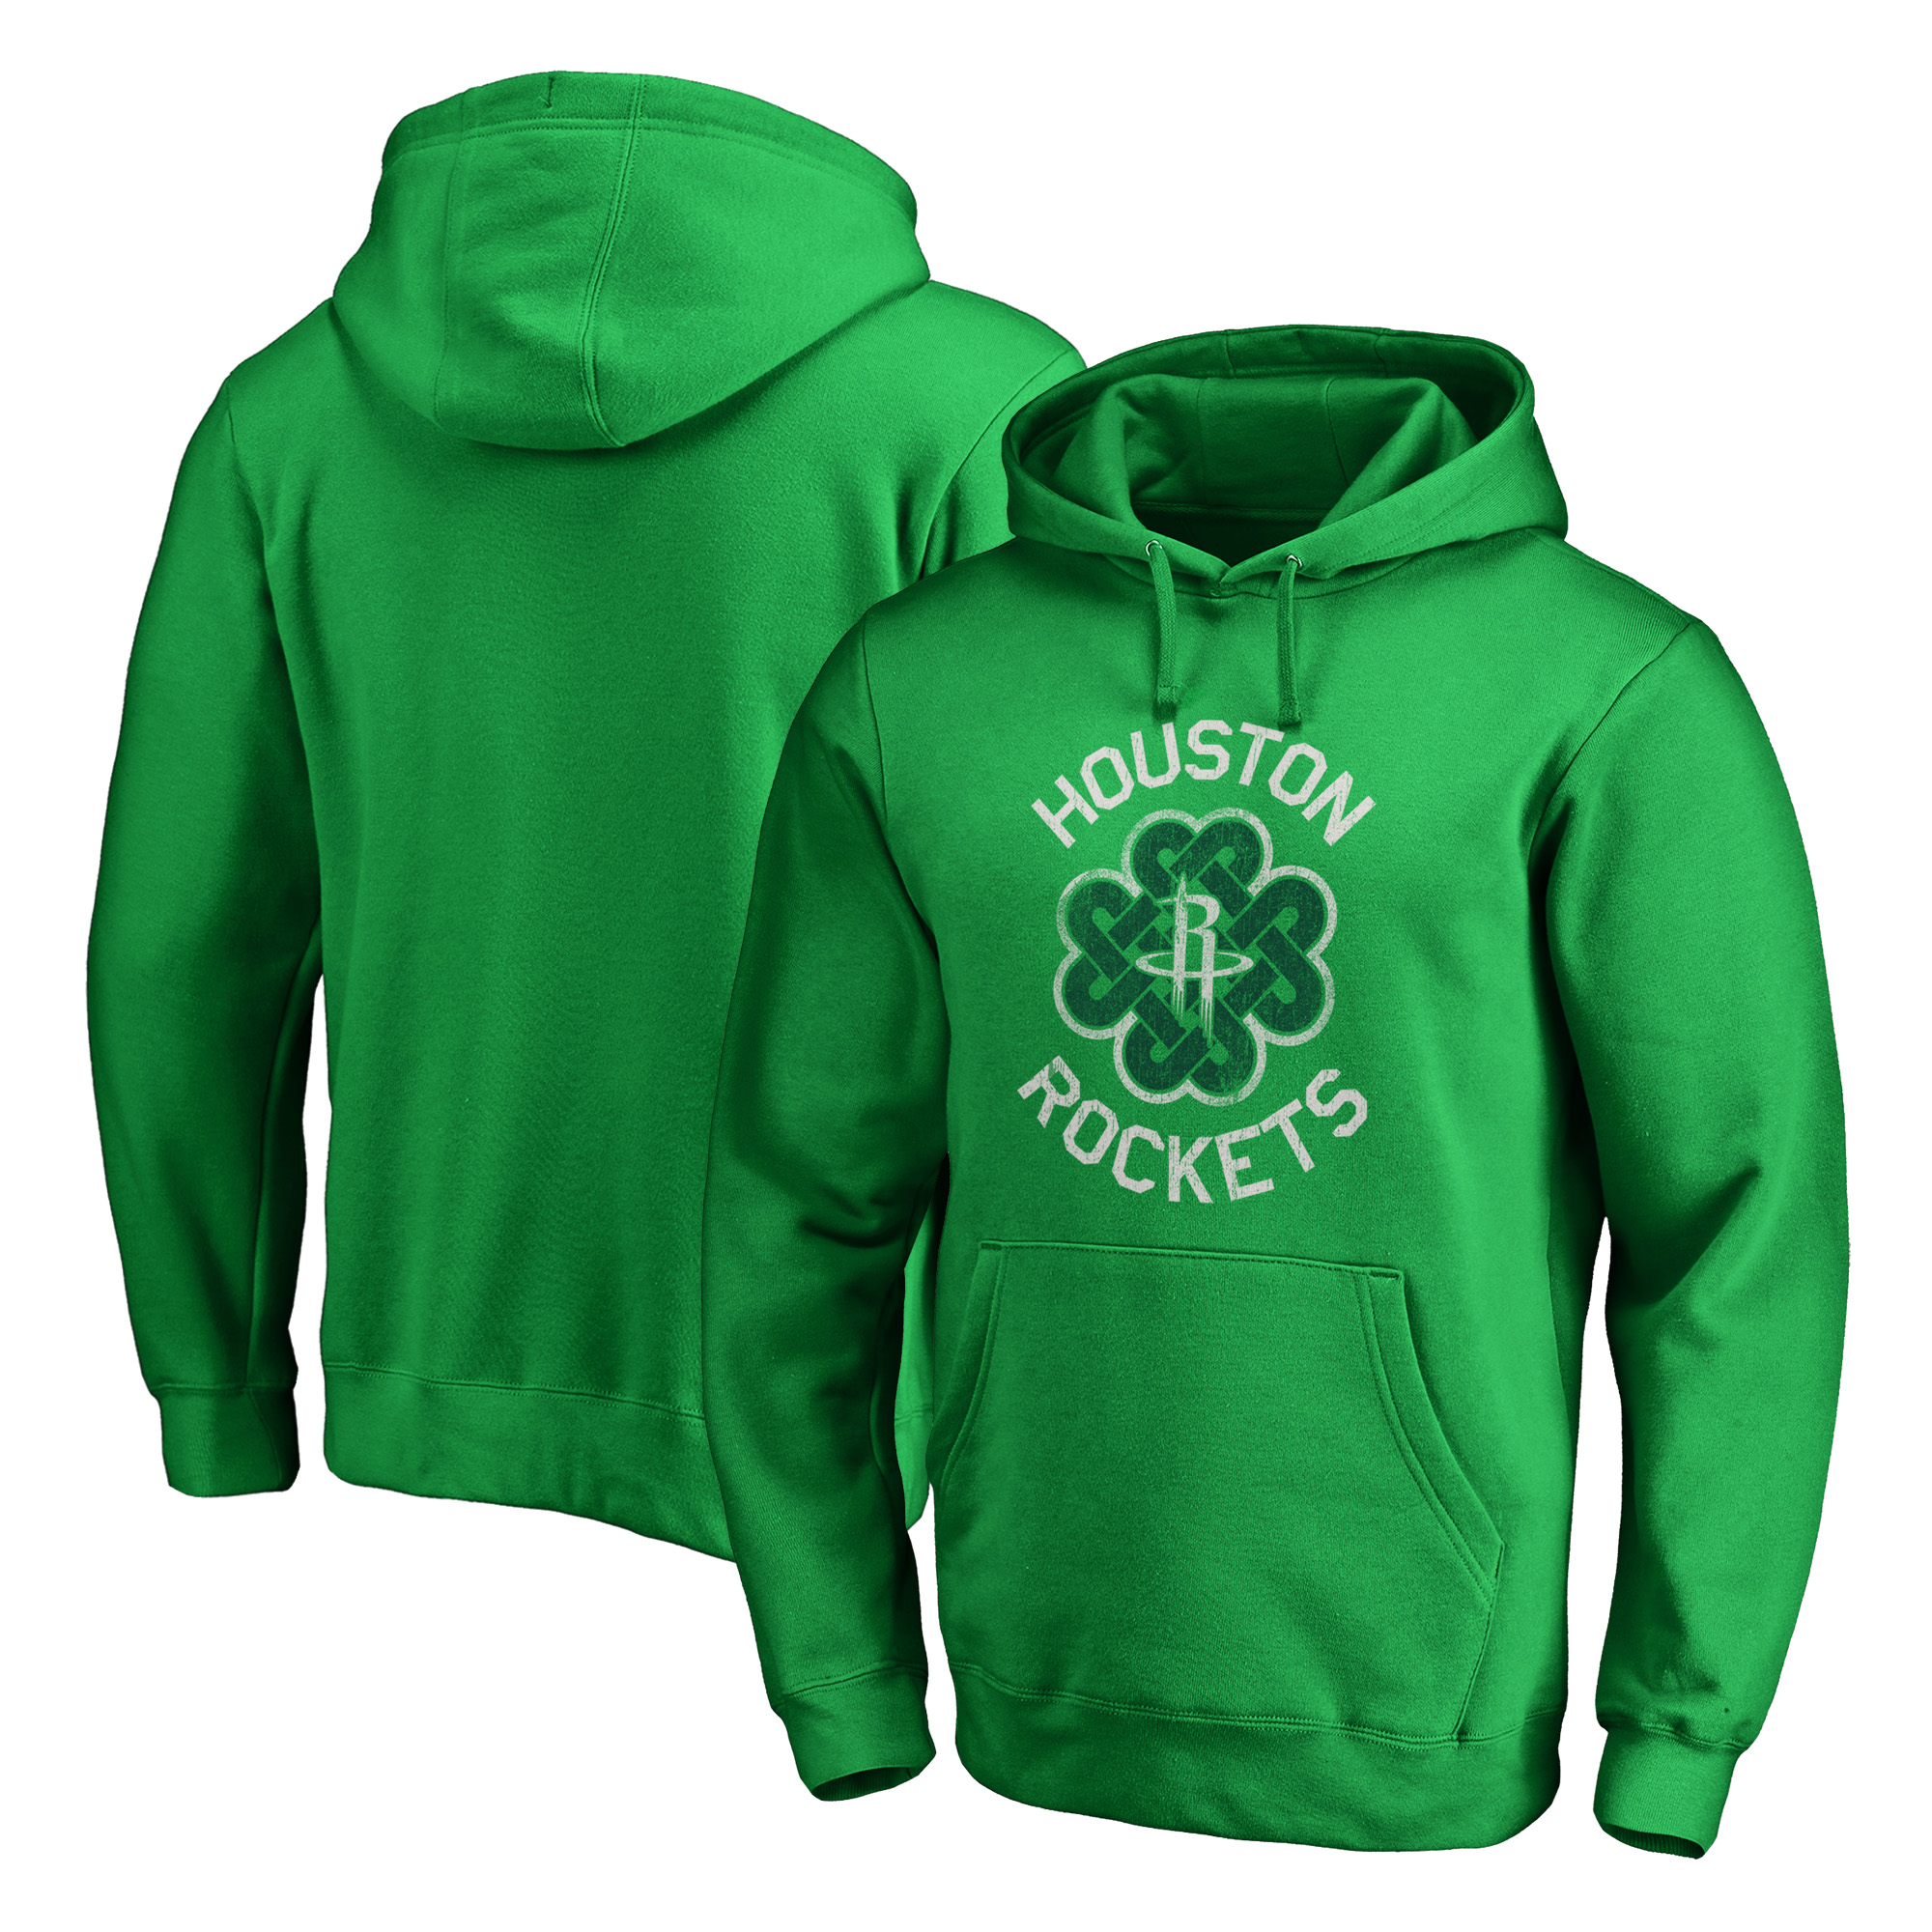 Houston Rockets Fanatics Branded St. Patrick's Day Luck Tradition Pullover Hoodie - Kelly Green